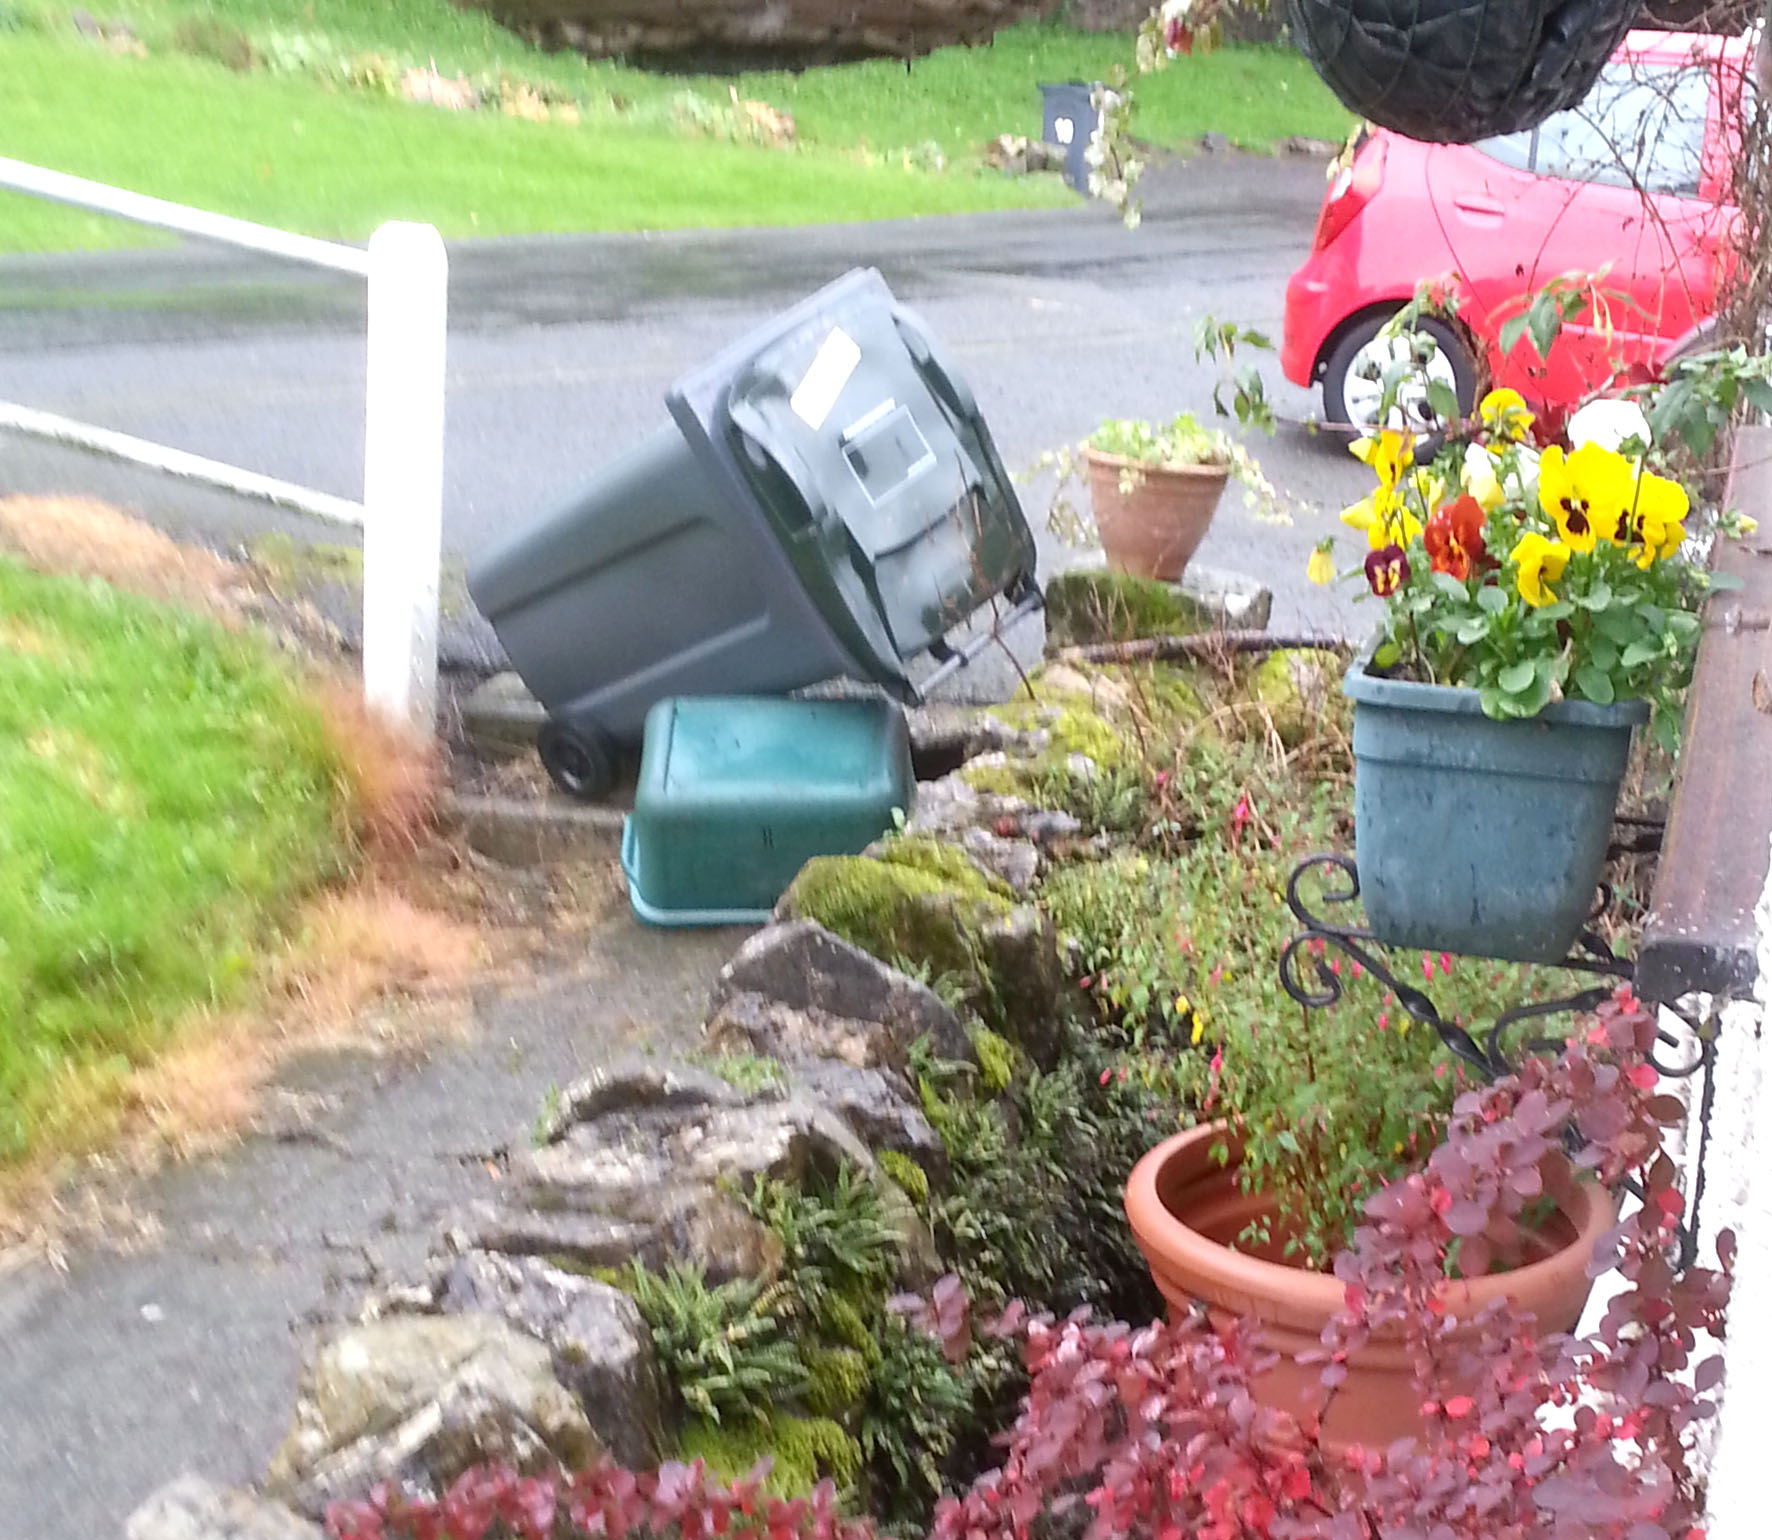 Bin Men Criticised on Untidy Collection